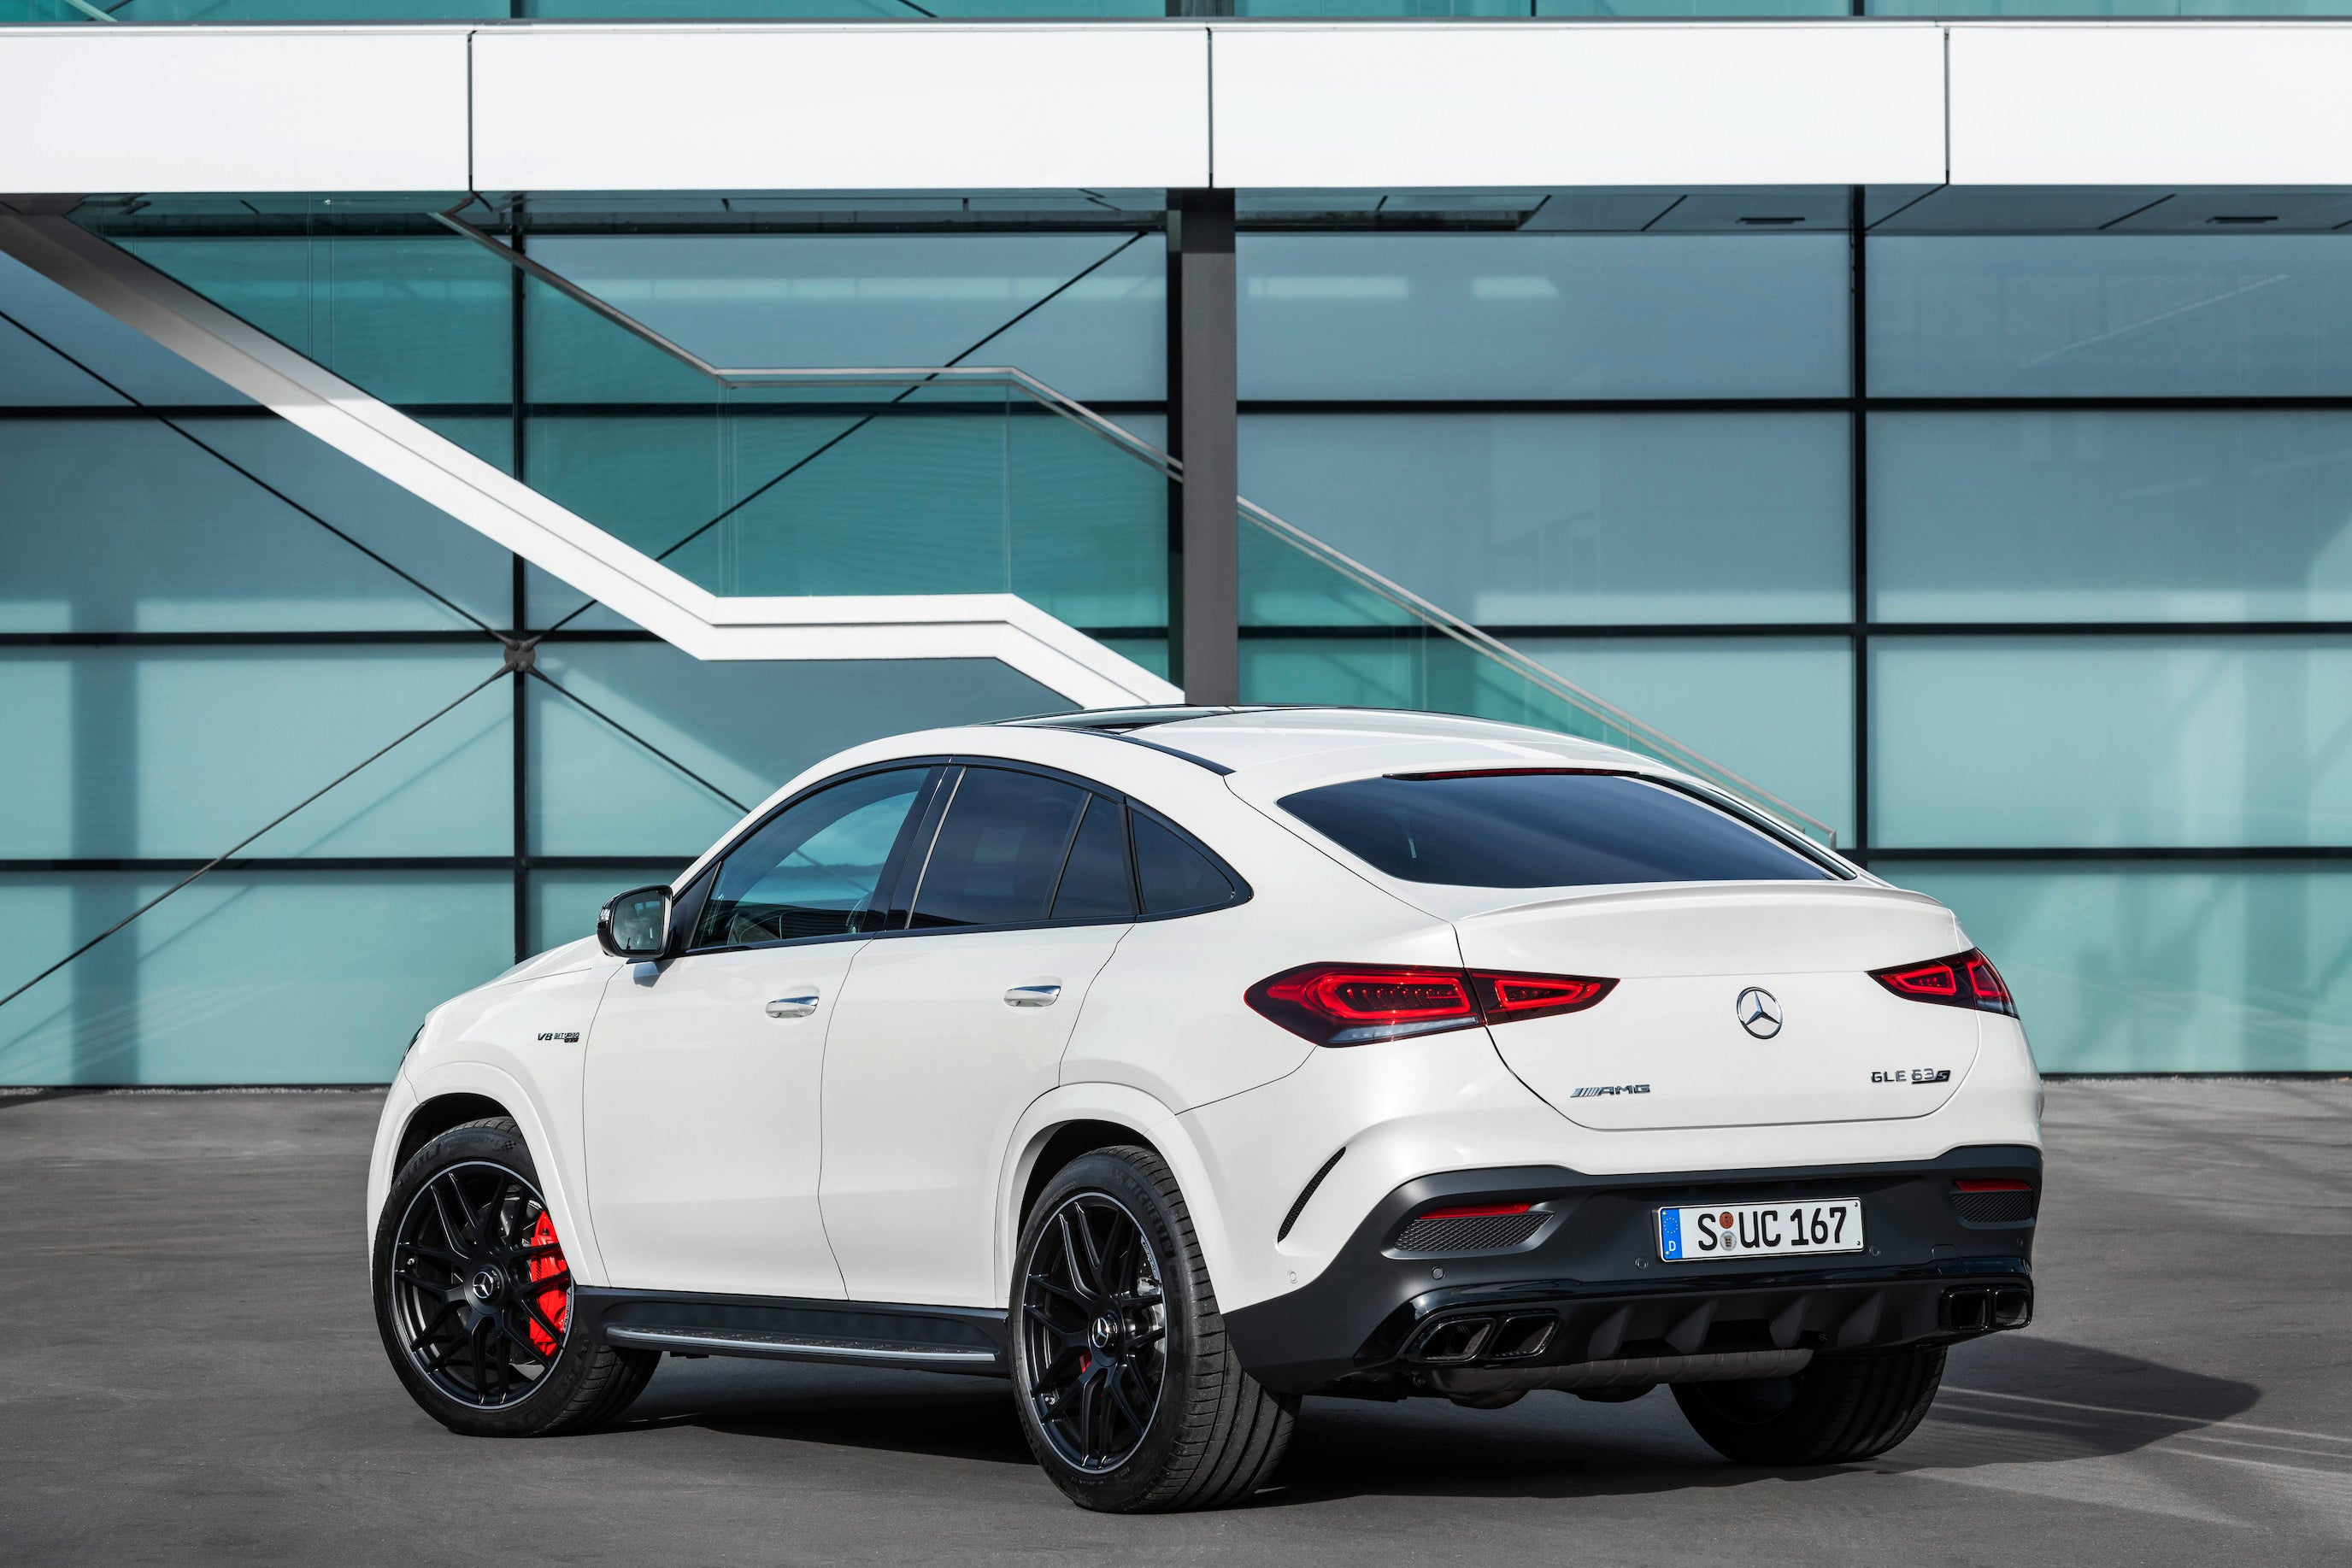 Mercedes-AMG GLE 63 S 4MATIC+ Coupé 02